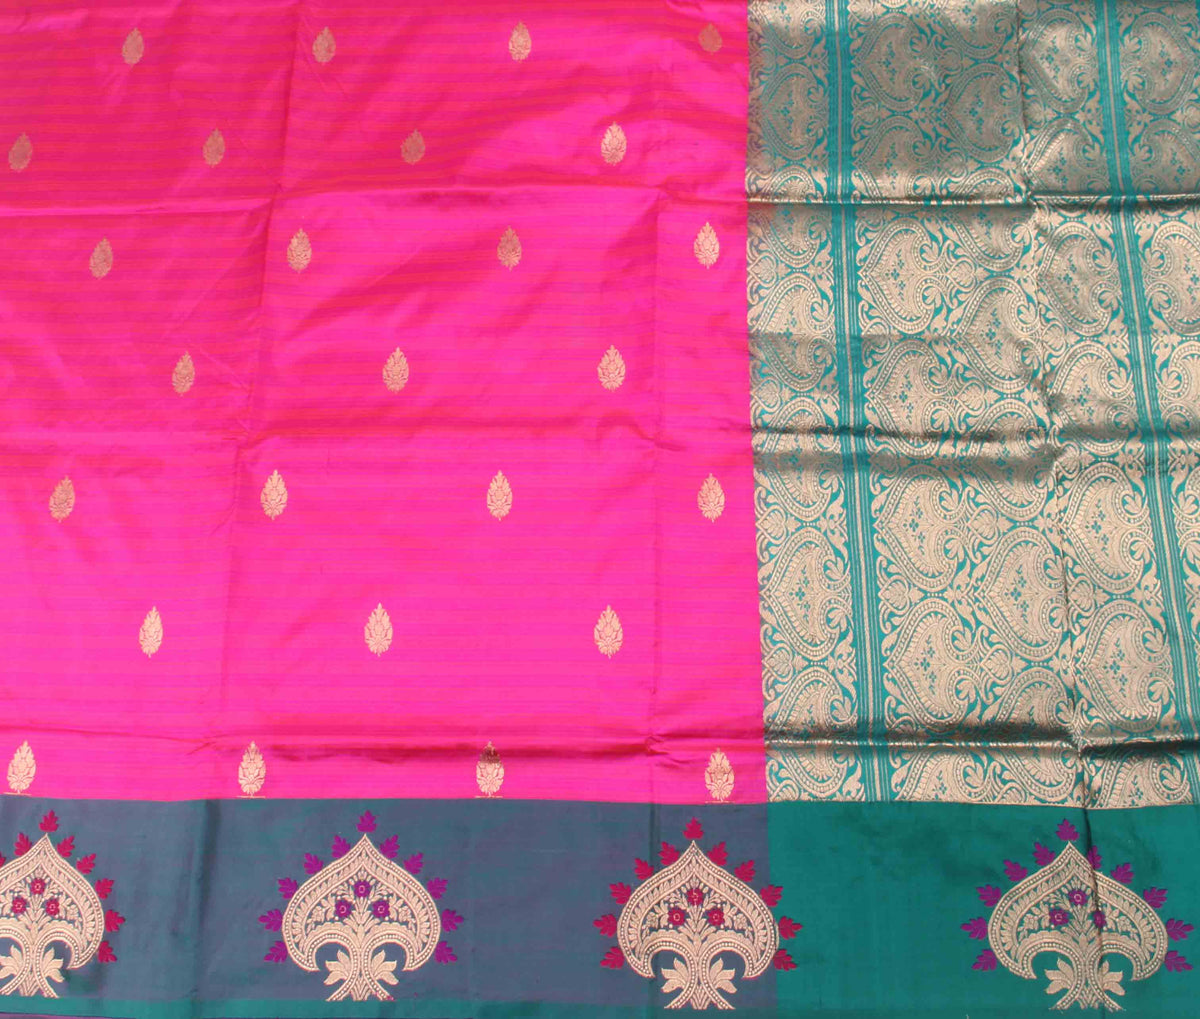 Pink Katan Silk Handwoven Banarasi saree with kalgi border (2) Flat